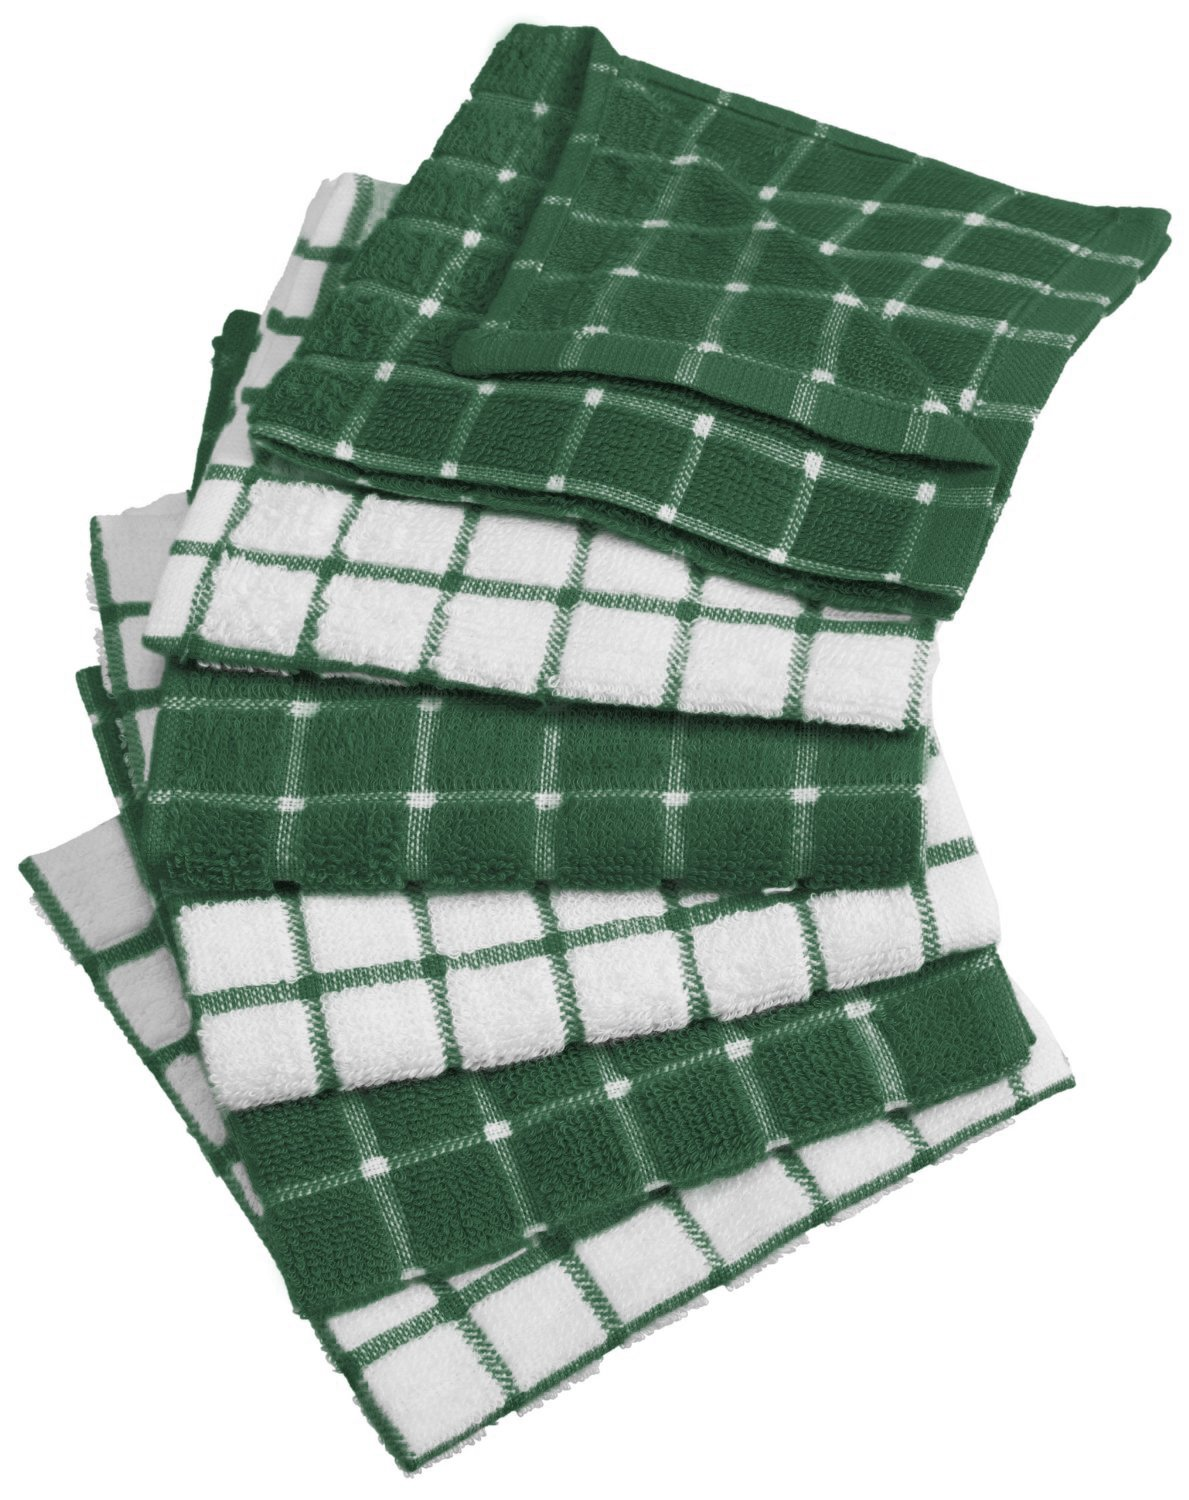 DII 100% Cotton, Machine Washable, Ultra Absorbant, Basic Everyday 12 x 12 Terry Kitchen Dish Cloths, Windowpane Design, Set of 6- Dark Green by DII